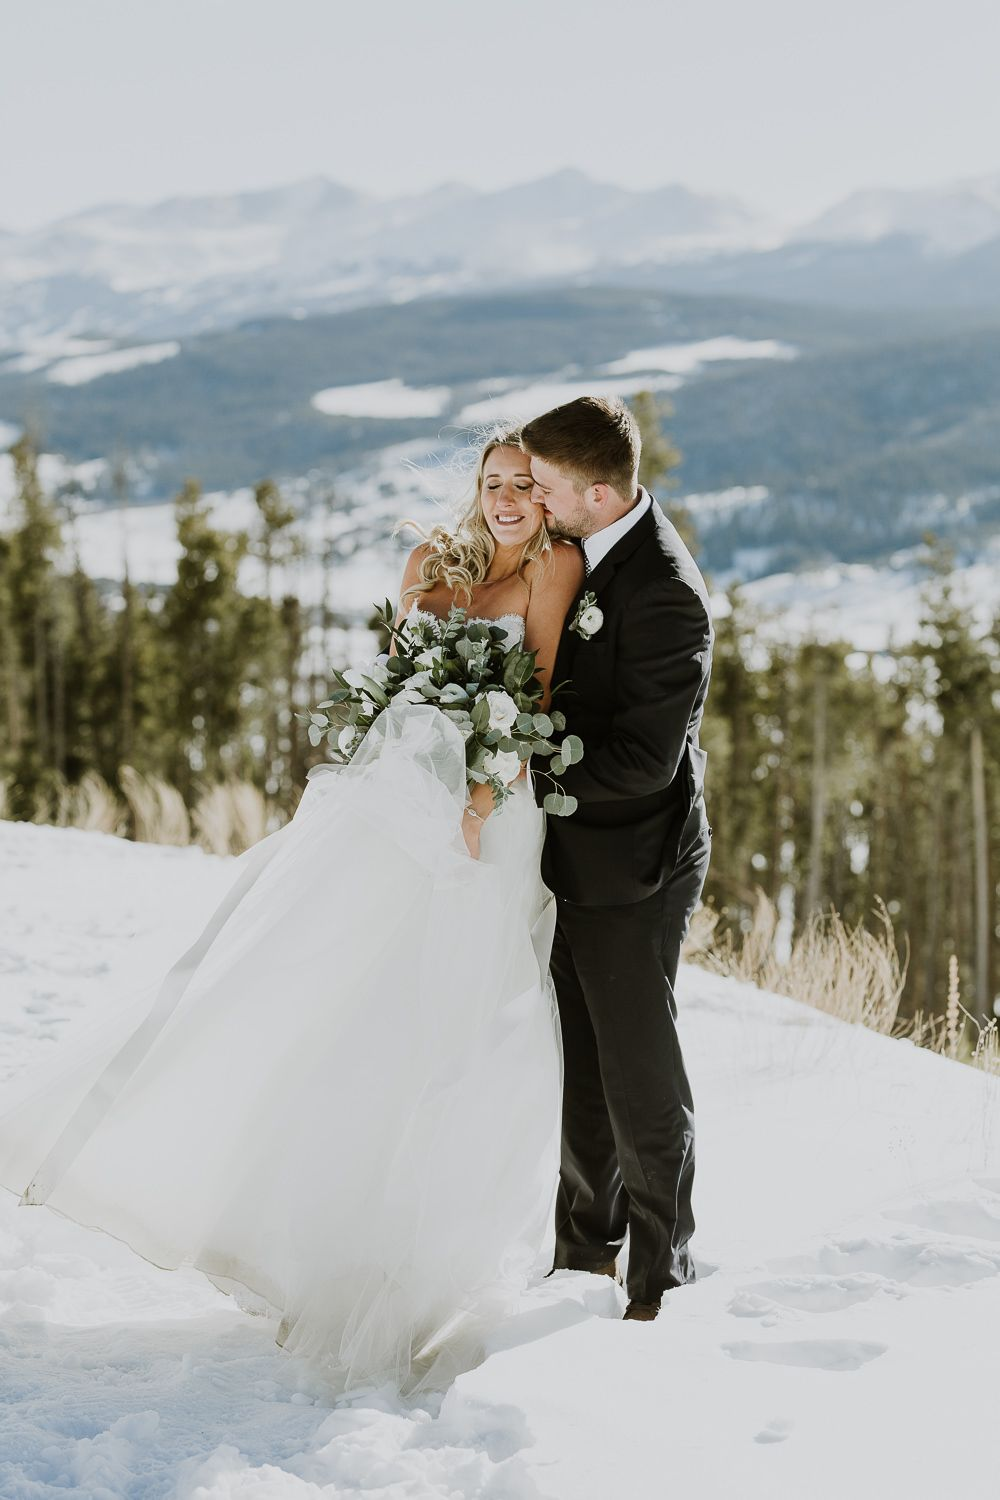 INTIMATE WINTER MOUNTAIN ELOPEMENT IN THE ROCKIES